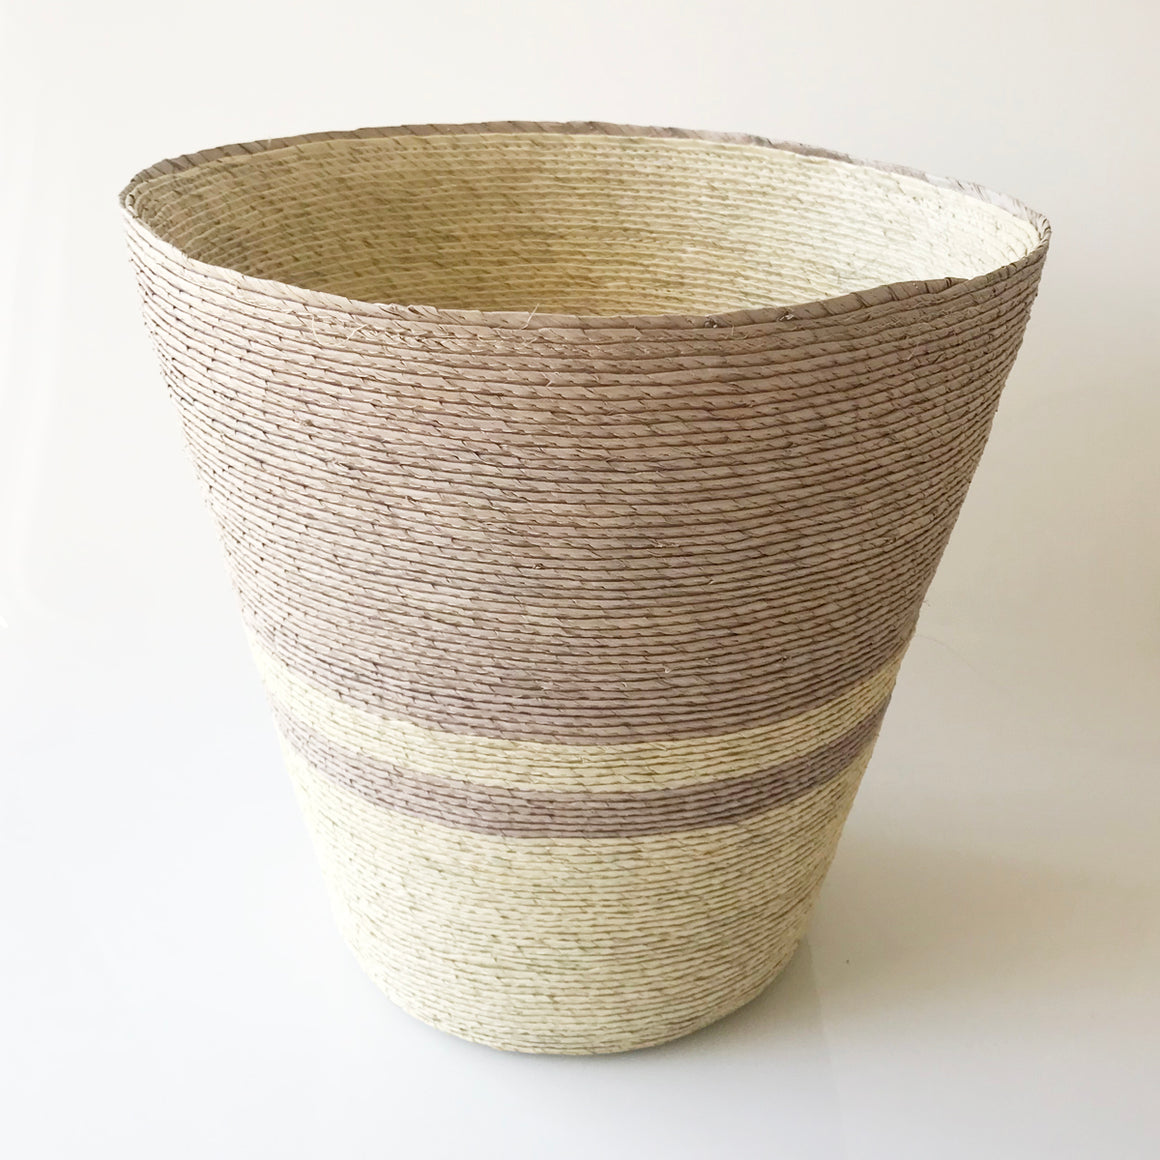 Conical Basket  - Arena Top + Stripe - KESTREL